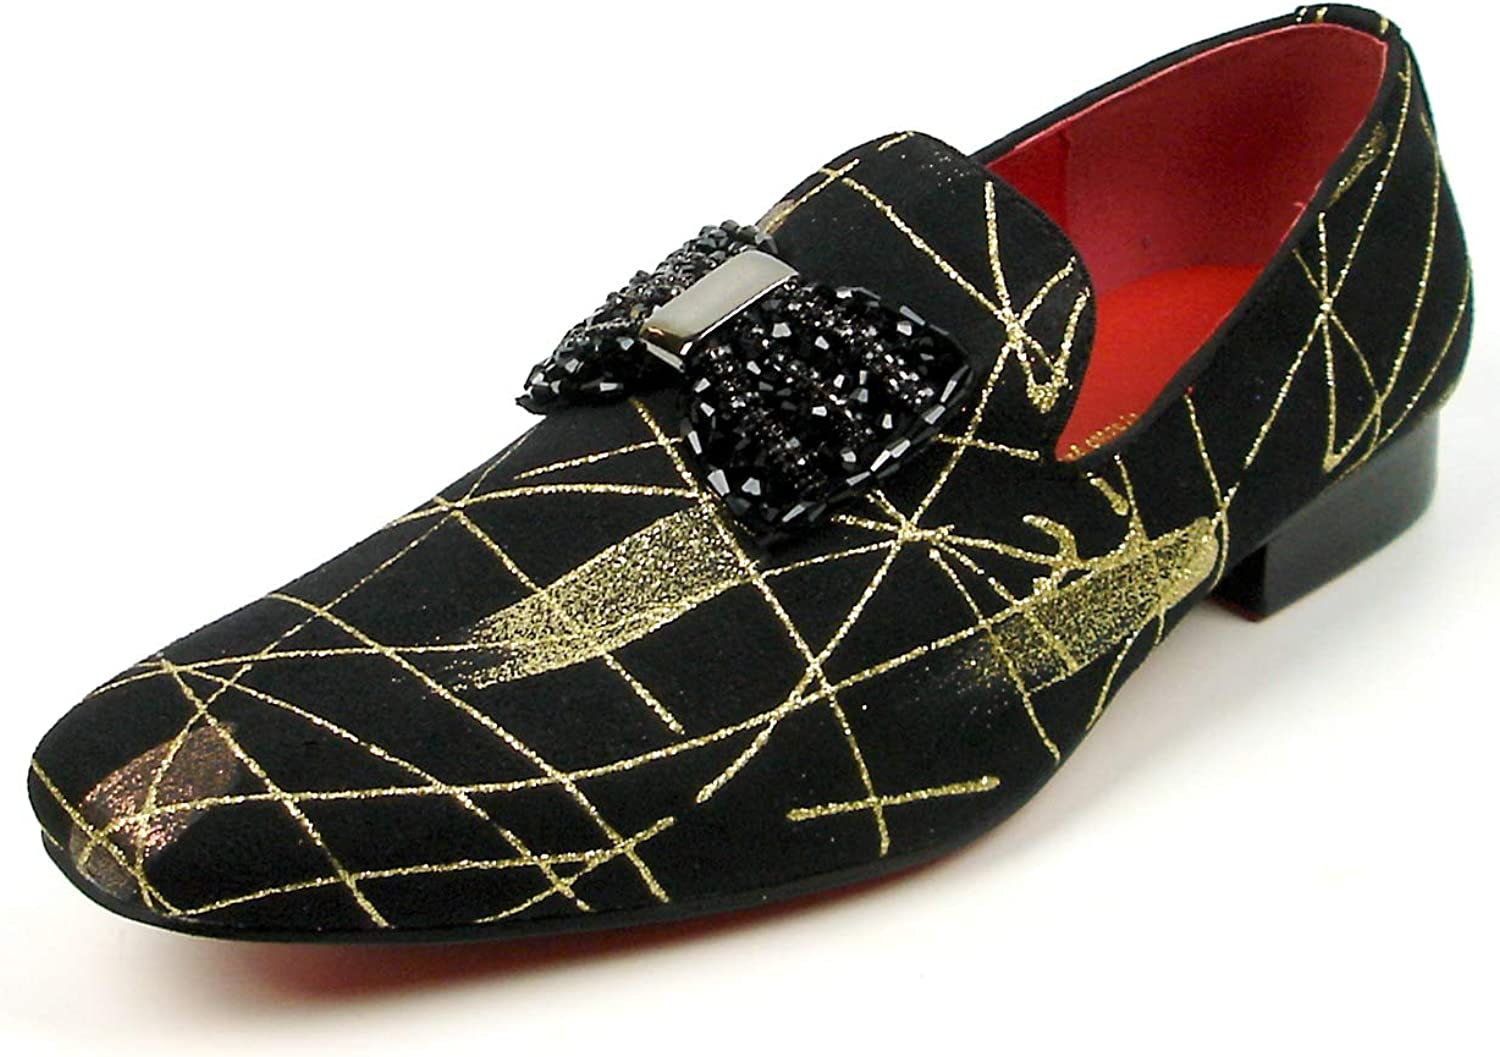 Fiesso by aurelio Garcia FI-7426 Black Suede gold Lines Bow Tie Ornament Slip on Loafer - European shoes Designs